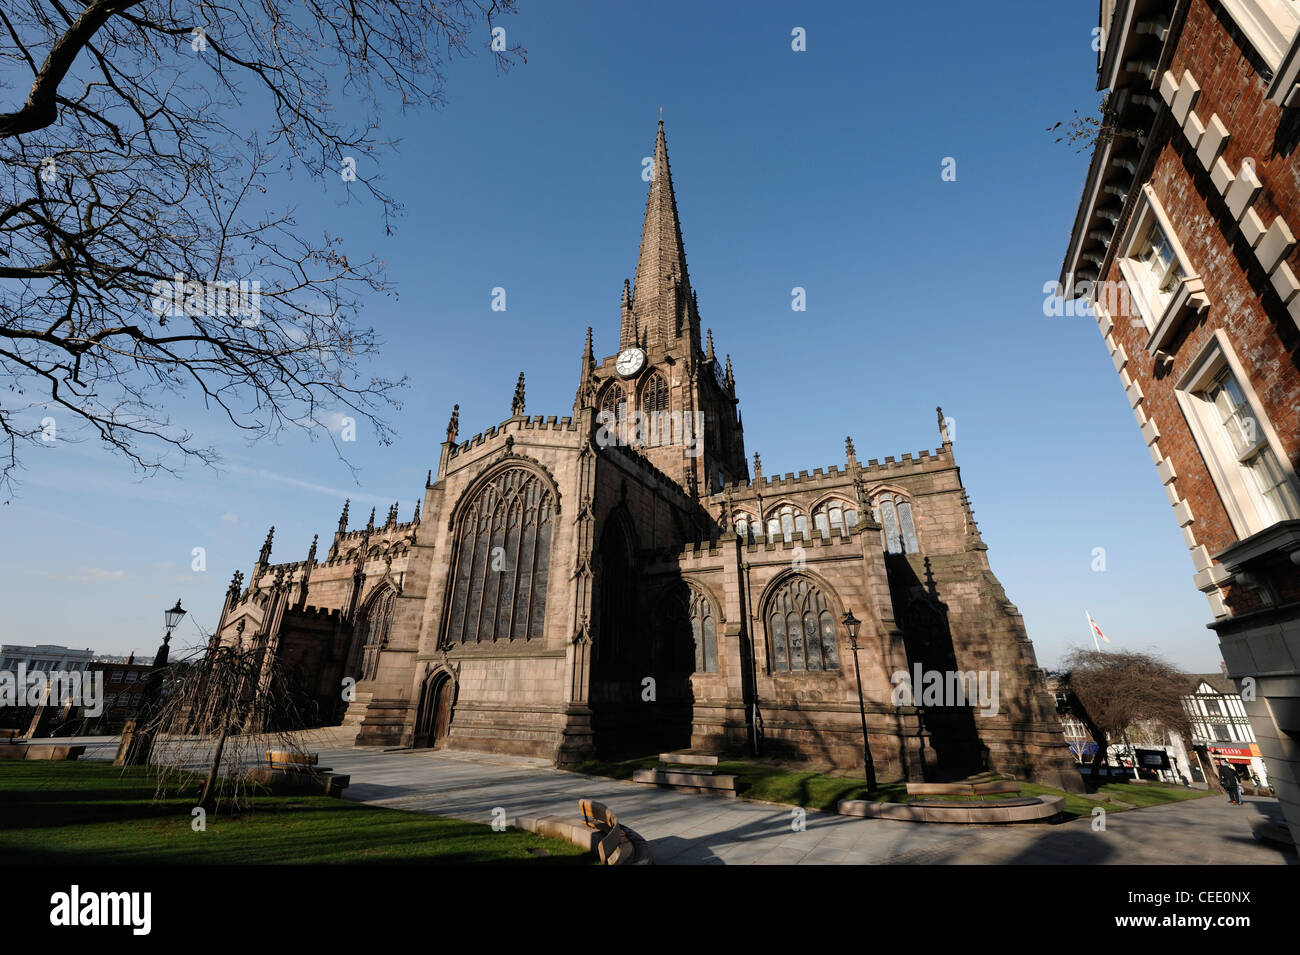 Rotherham Minster All Saints Church Rotherham town centre - Stock Image